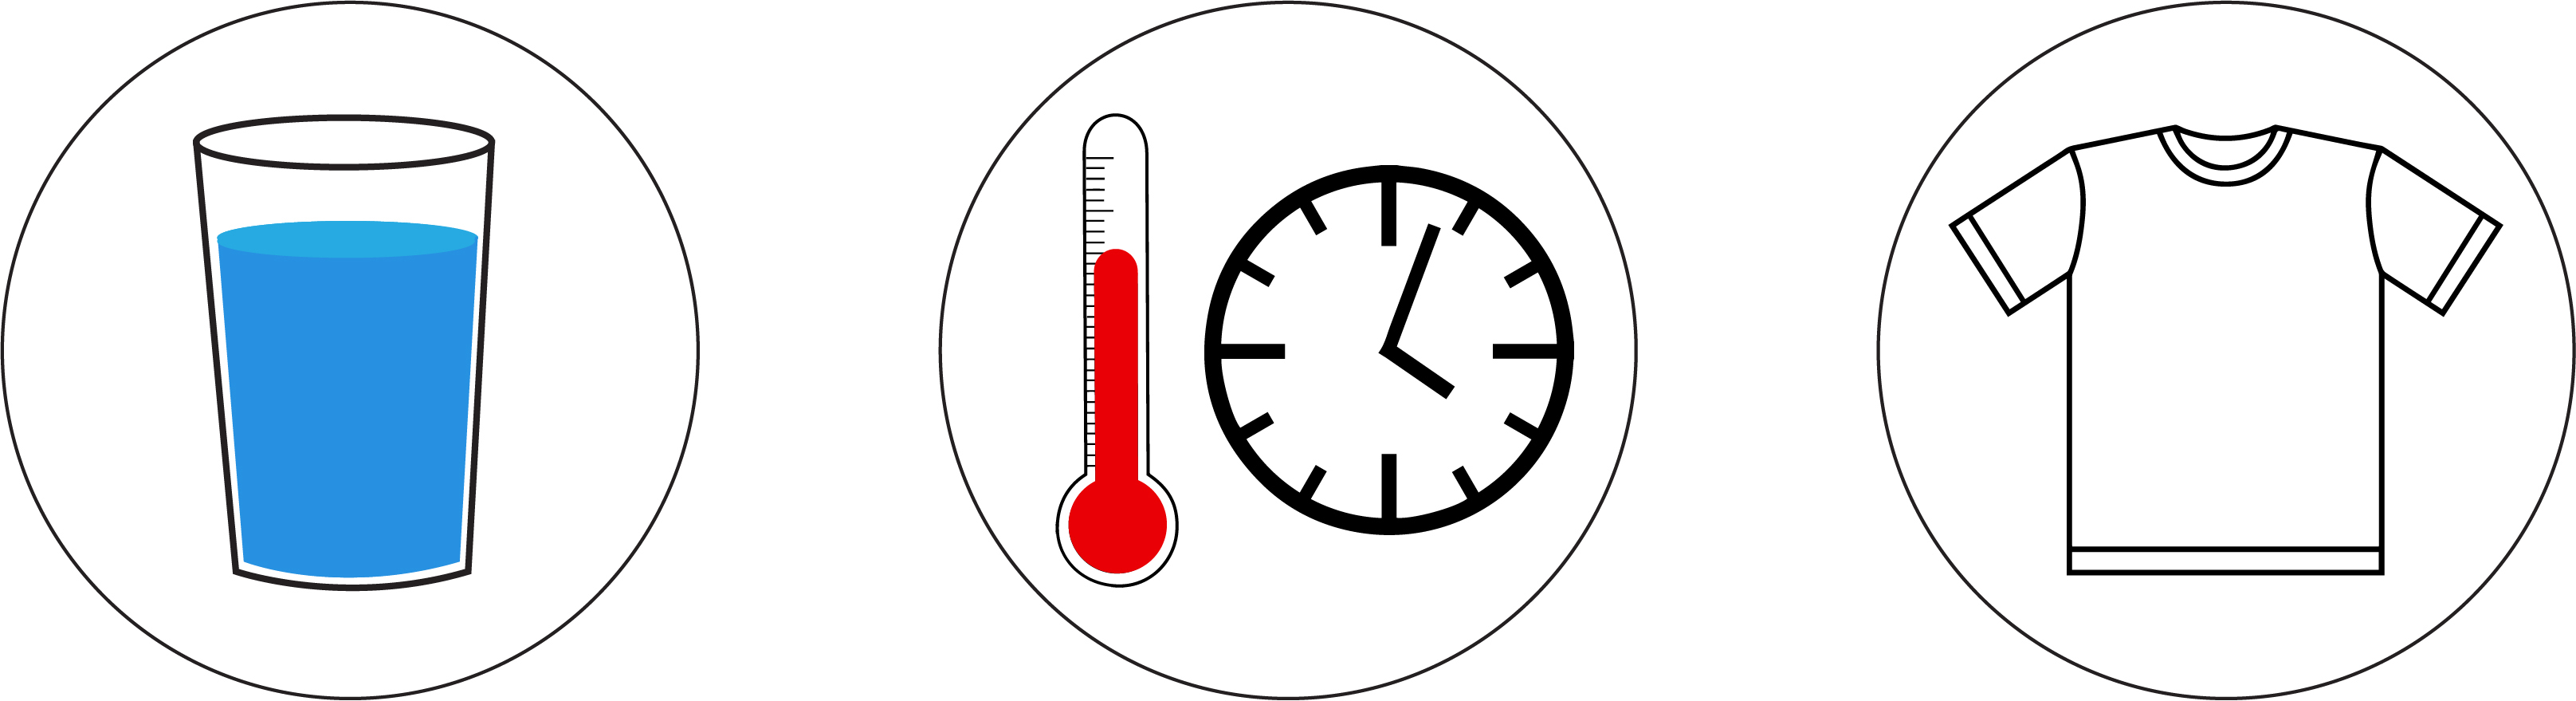 heat stress is caused by 3 factors: dehydration, improper acclimation to hot temperatures, and clothing choices